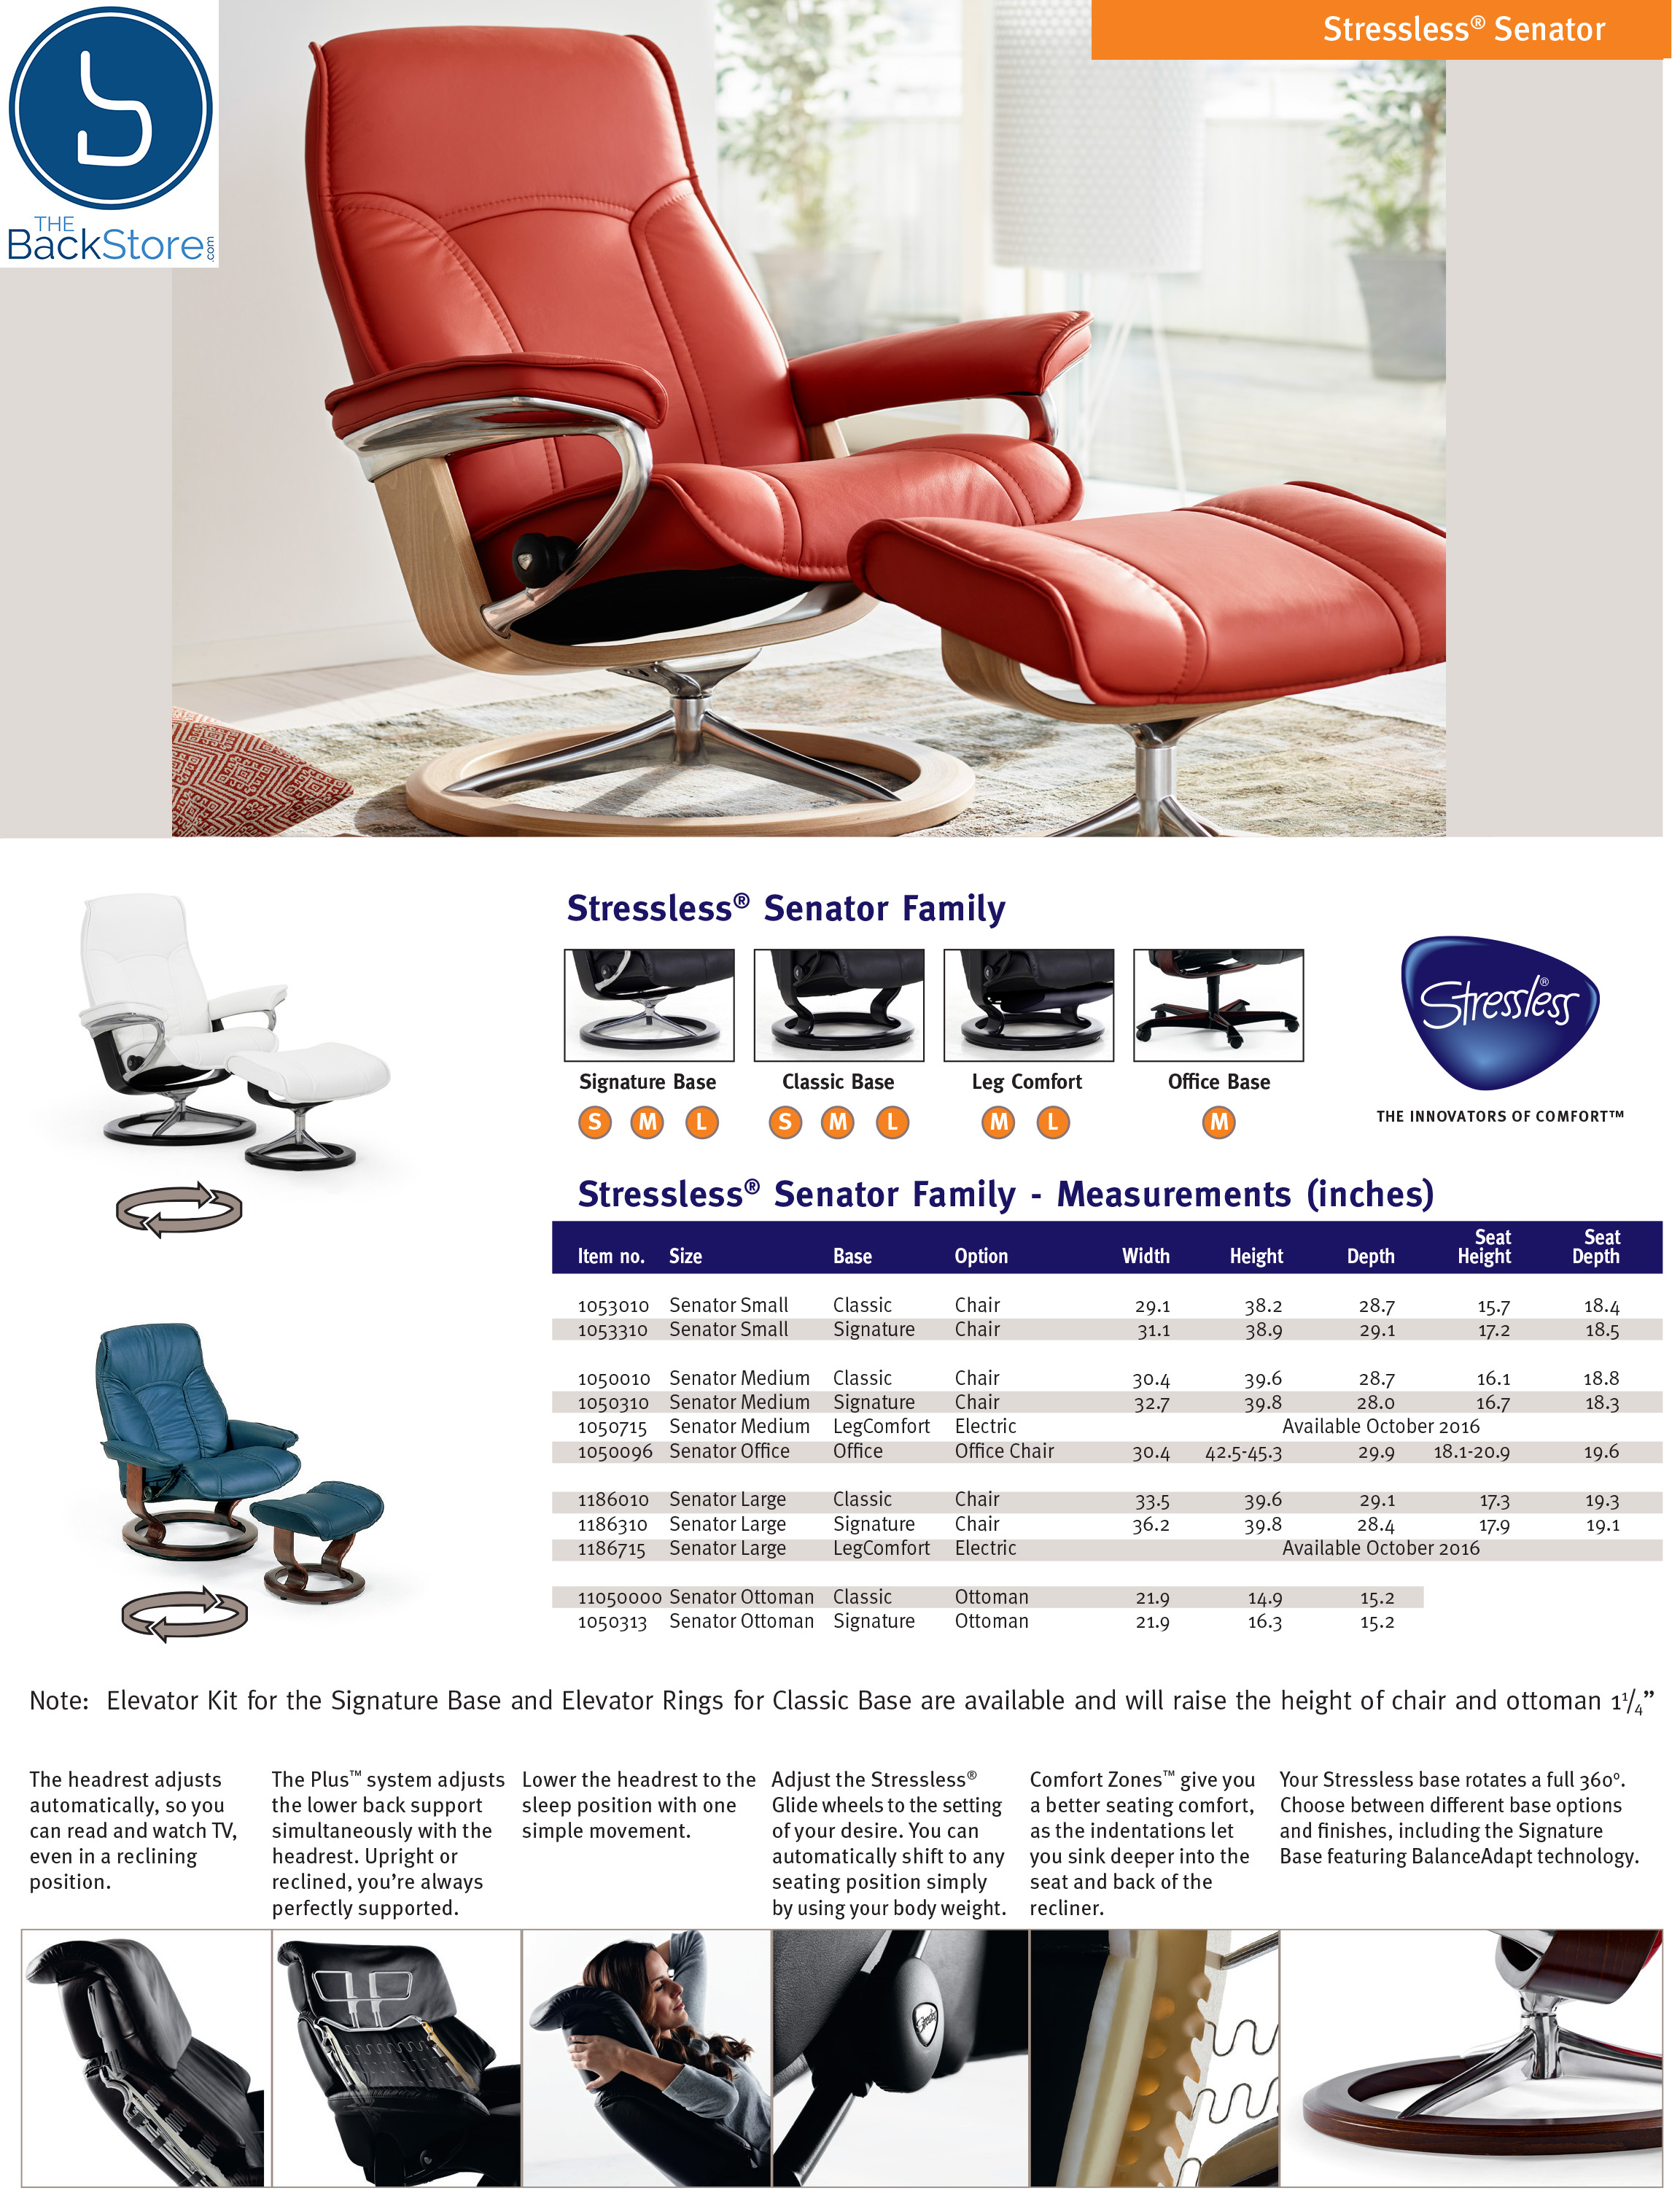 Stressless Video Stressless Governor Paloma Brandy Leather Recliner Chair And Ottoman By Ekornes